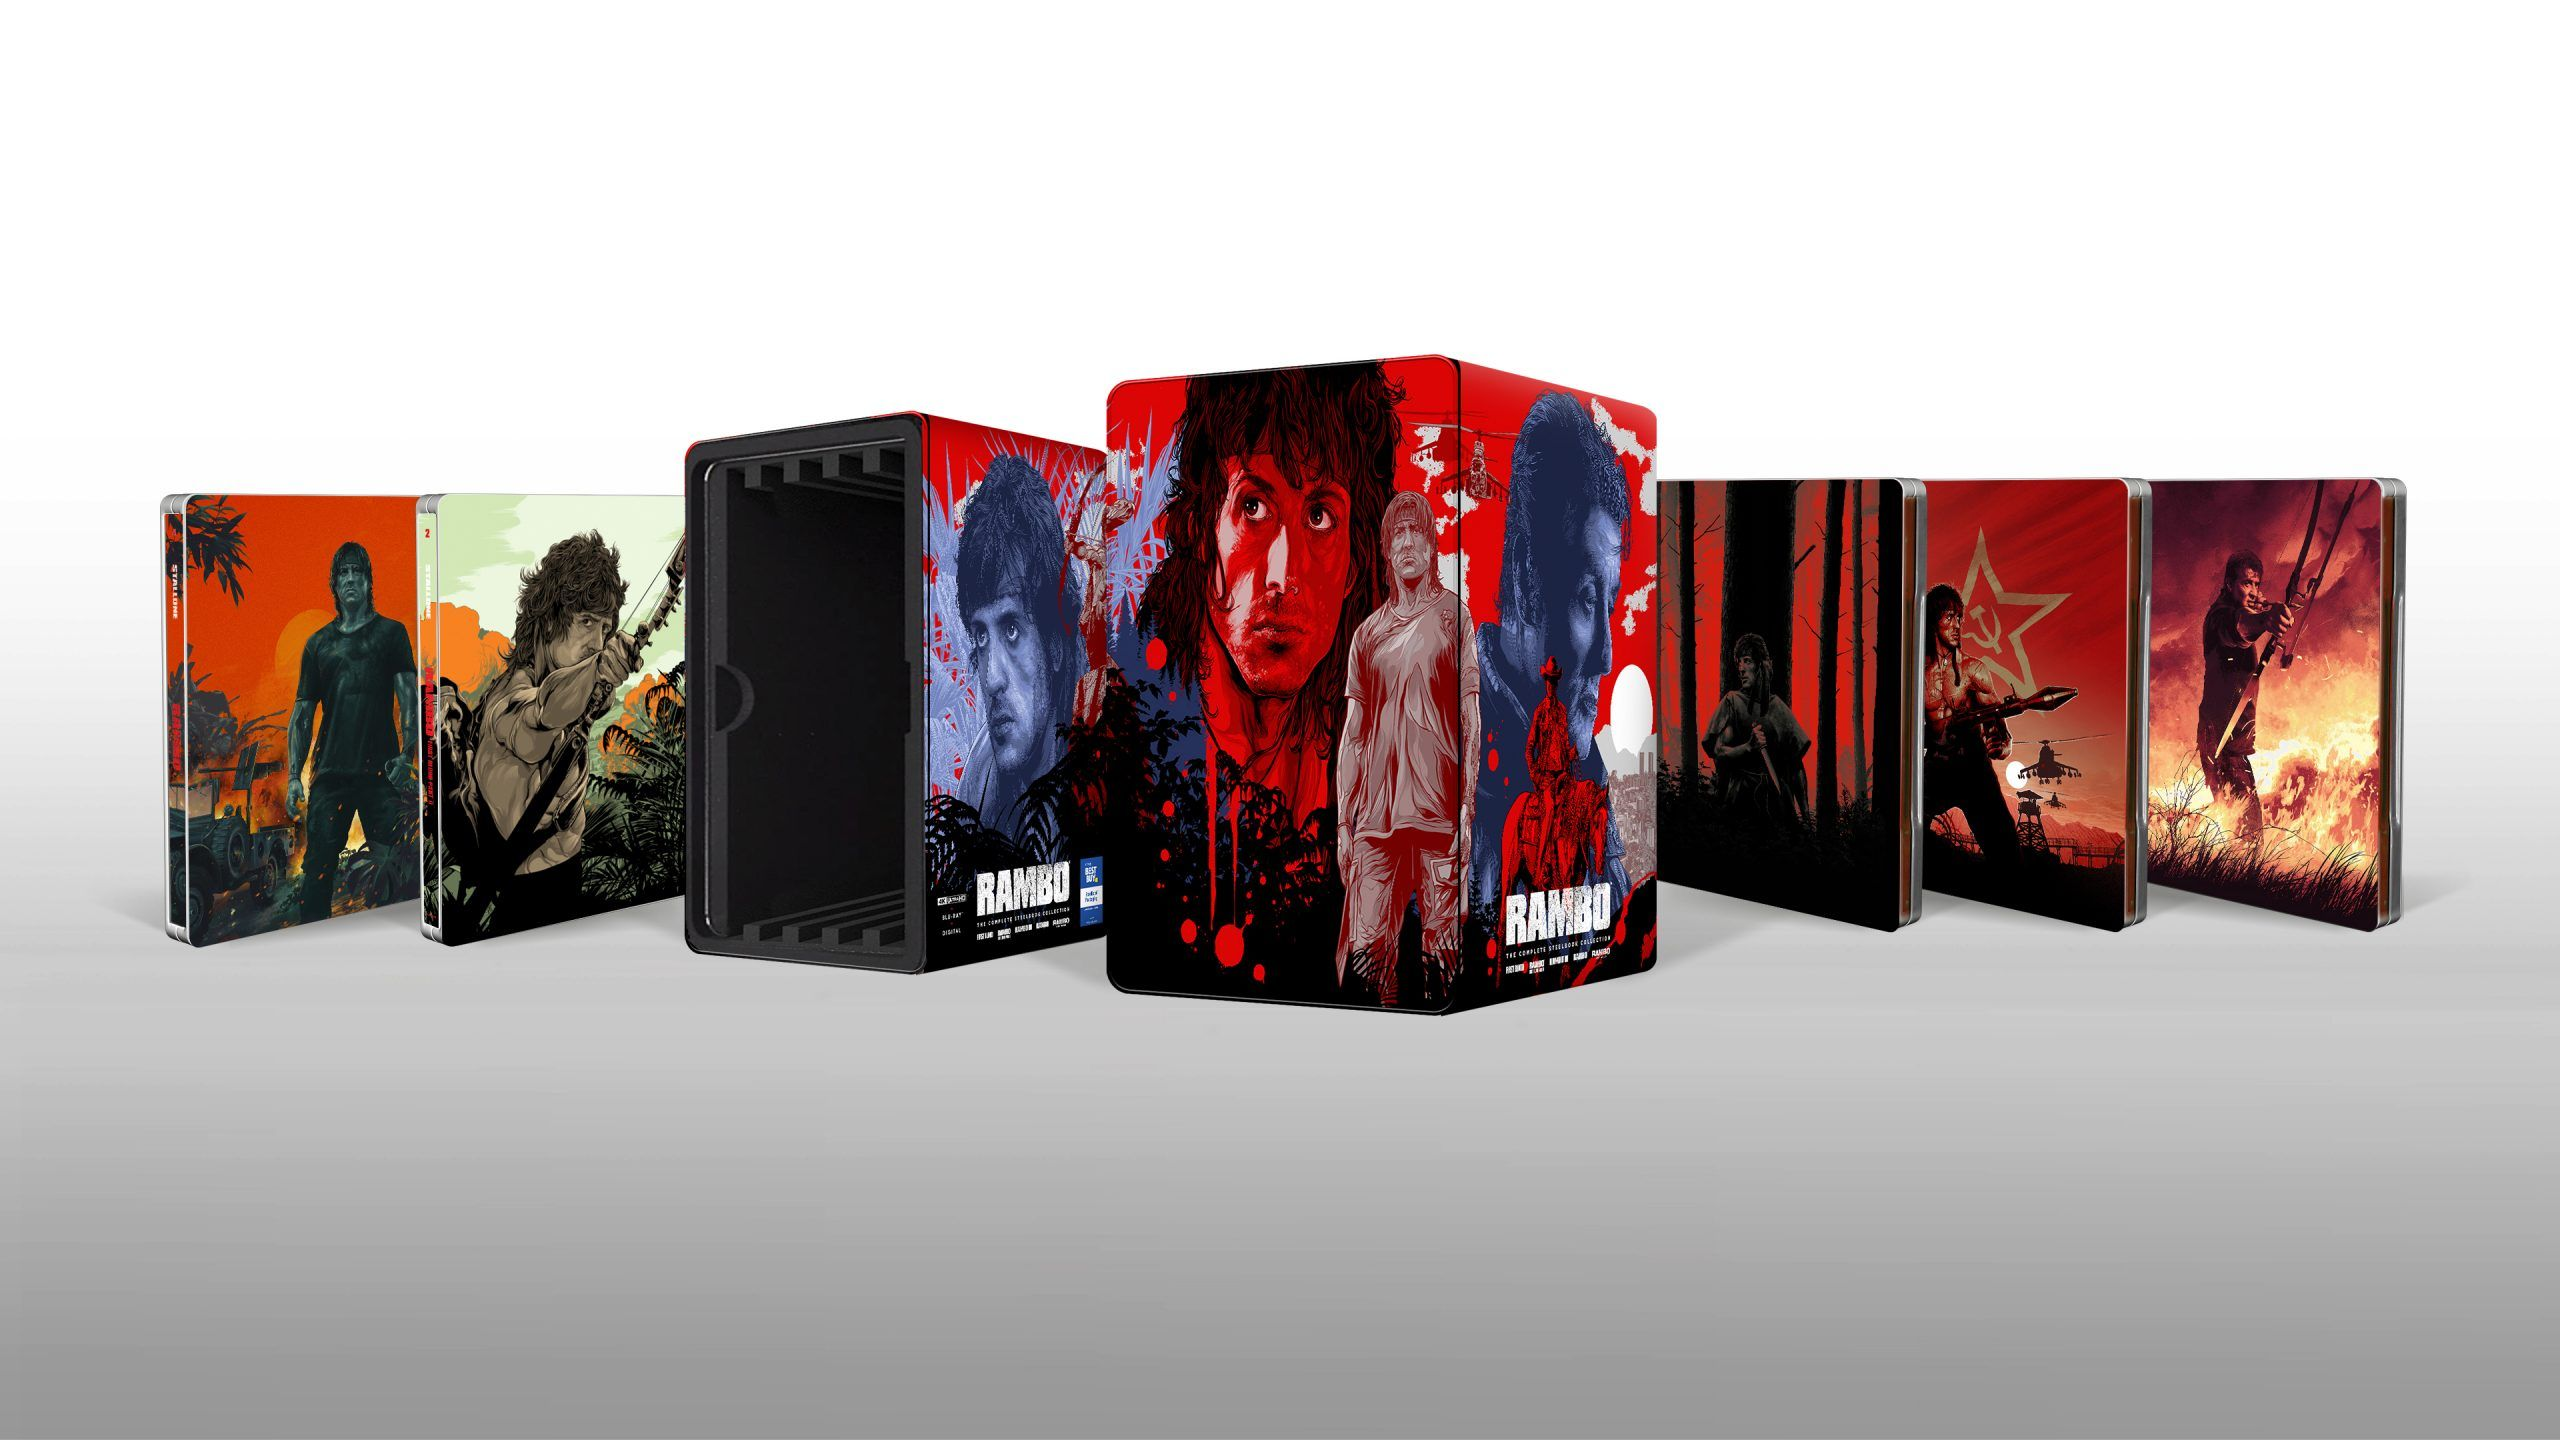 rambo-steelbook-collection-scaled.jpg